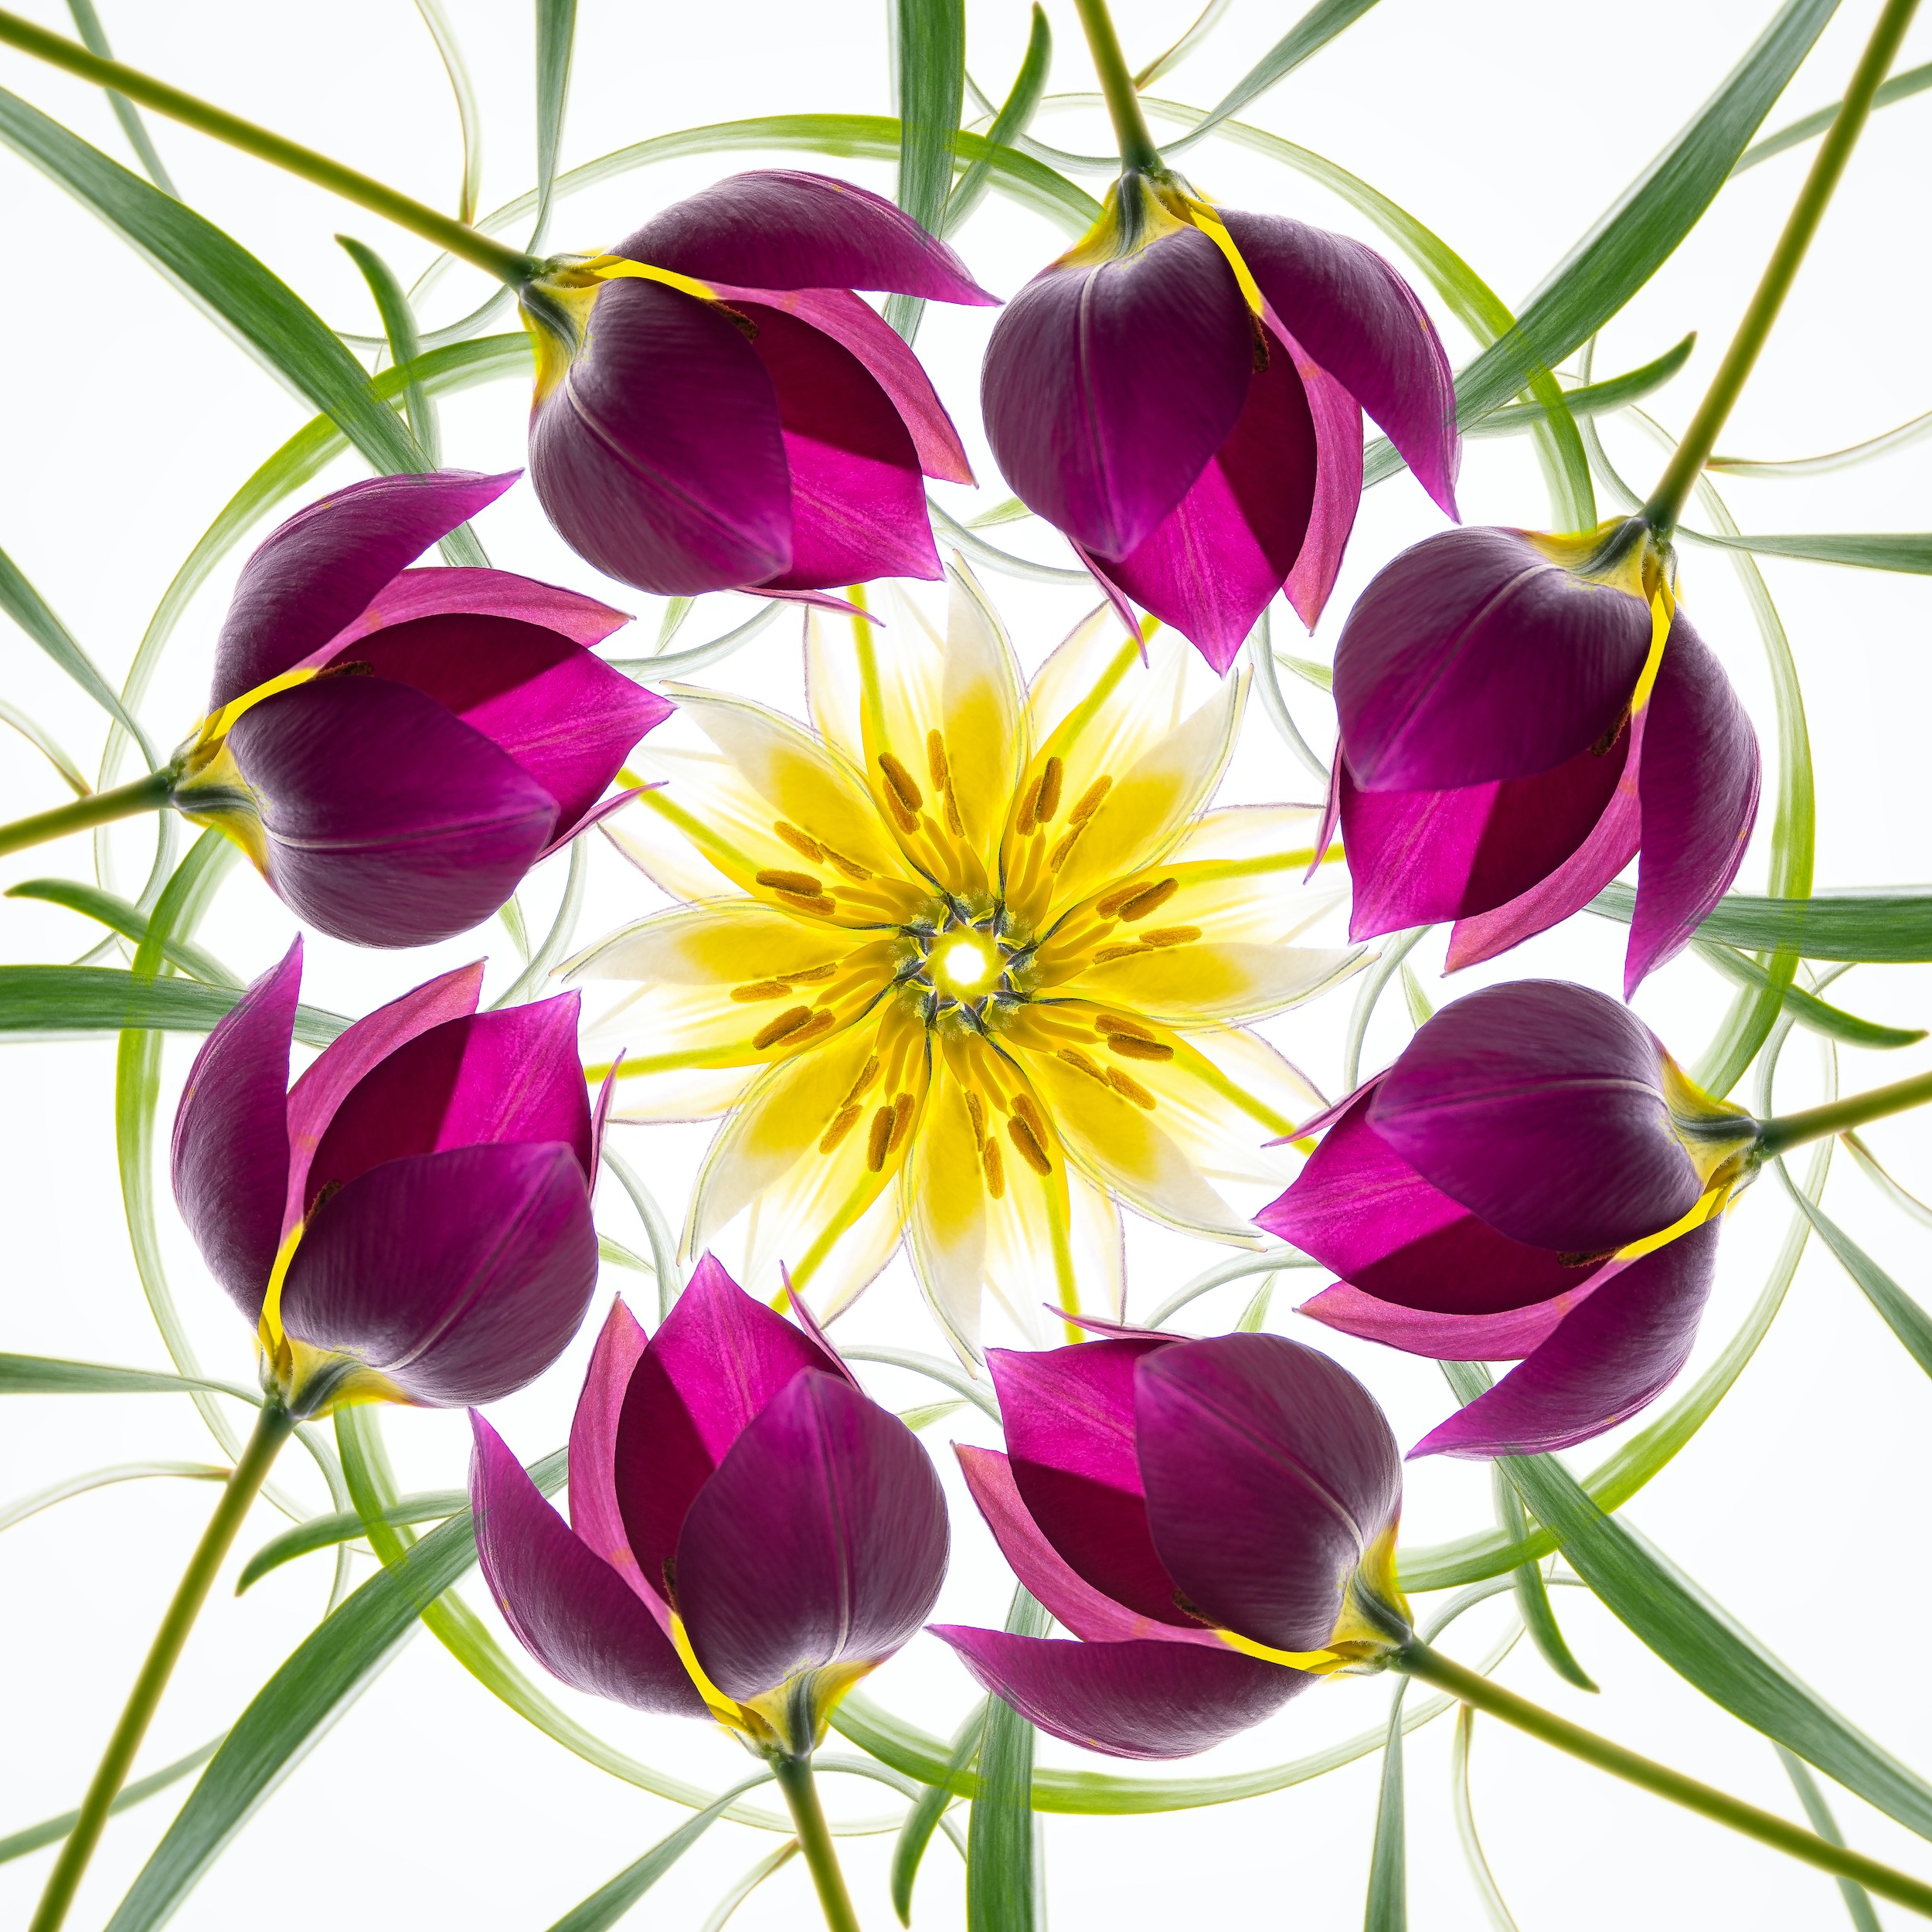 A kaliedoscopic flower arrangement on a lightbox includes purple tulips encircling a yellow star-like flower